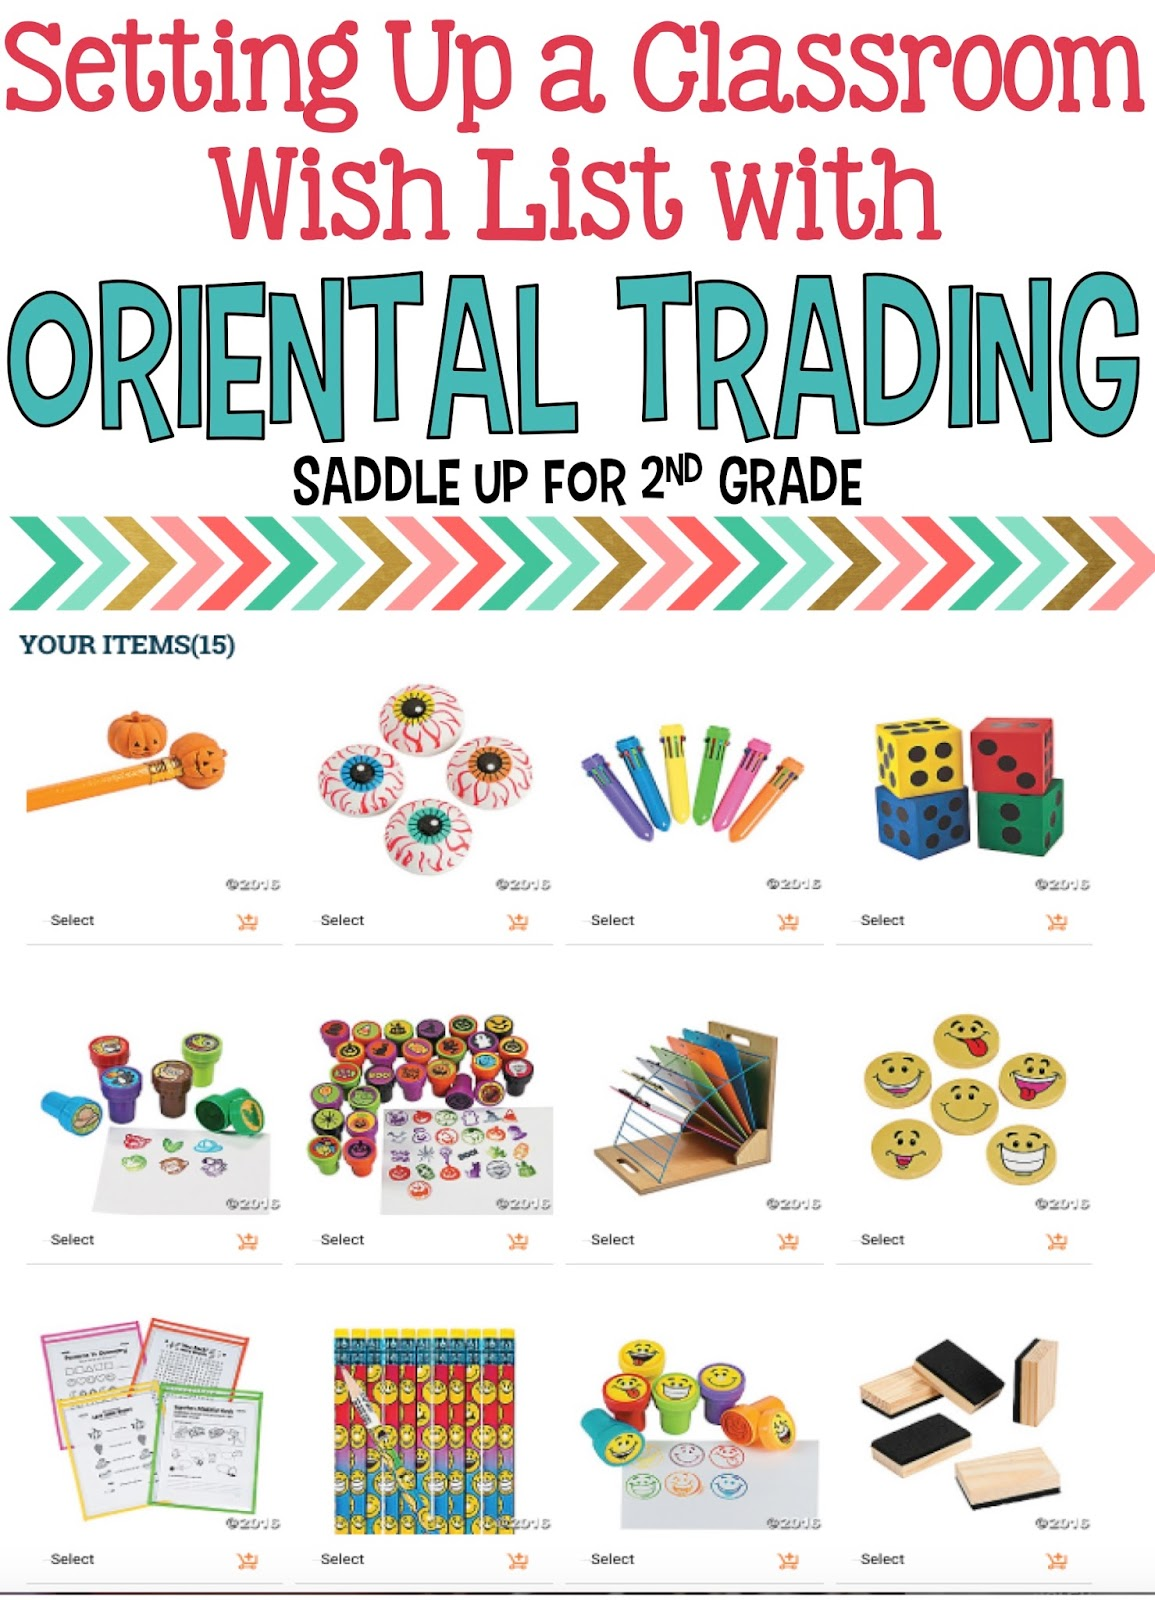 I often get asked by parents to let them know if there is anything we need for our classroom. The simplest way to share these items with parents is to show them a classroom wish list. I'm so excited that Oriental Trading has a new feature that makes it easy to keep my parents informed on what is needed in my classroom.